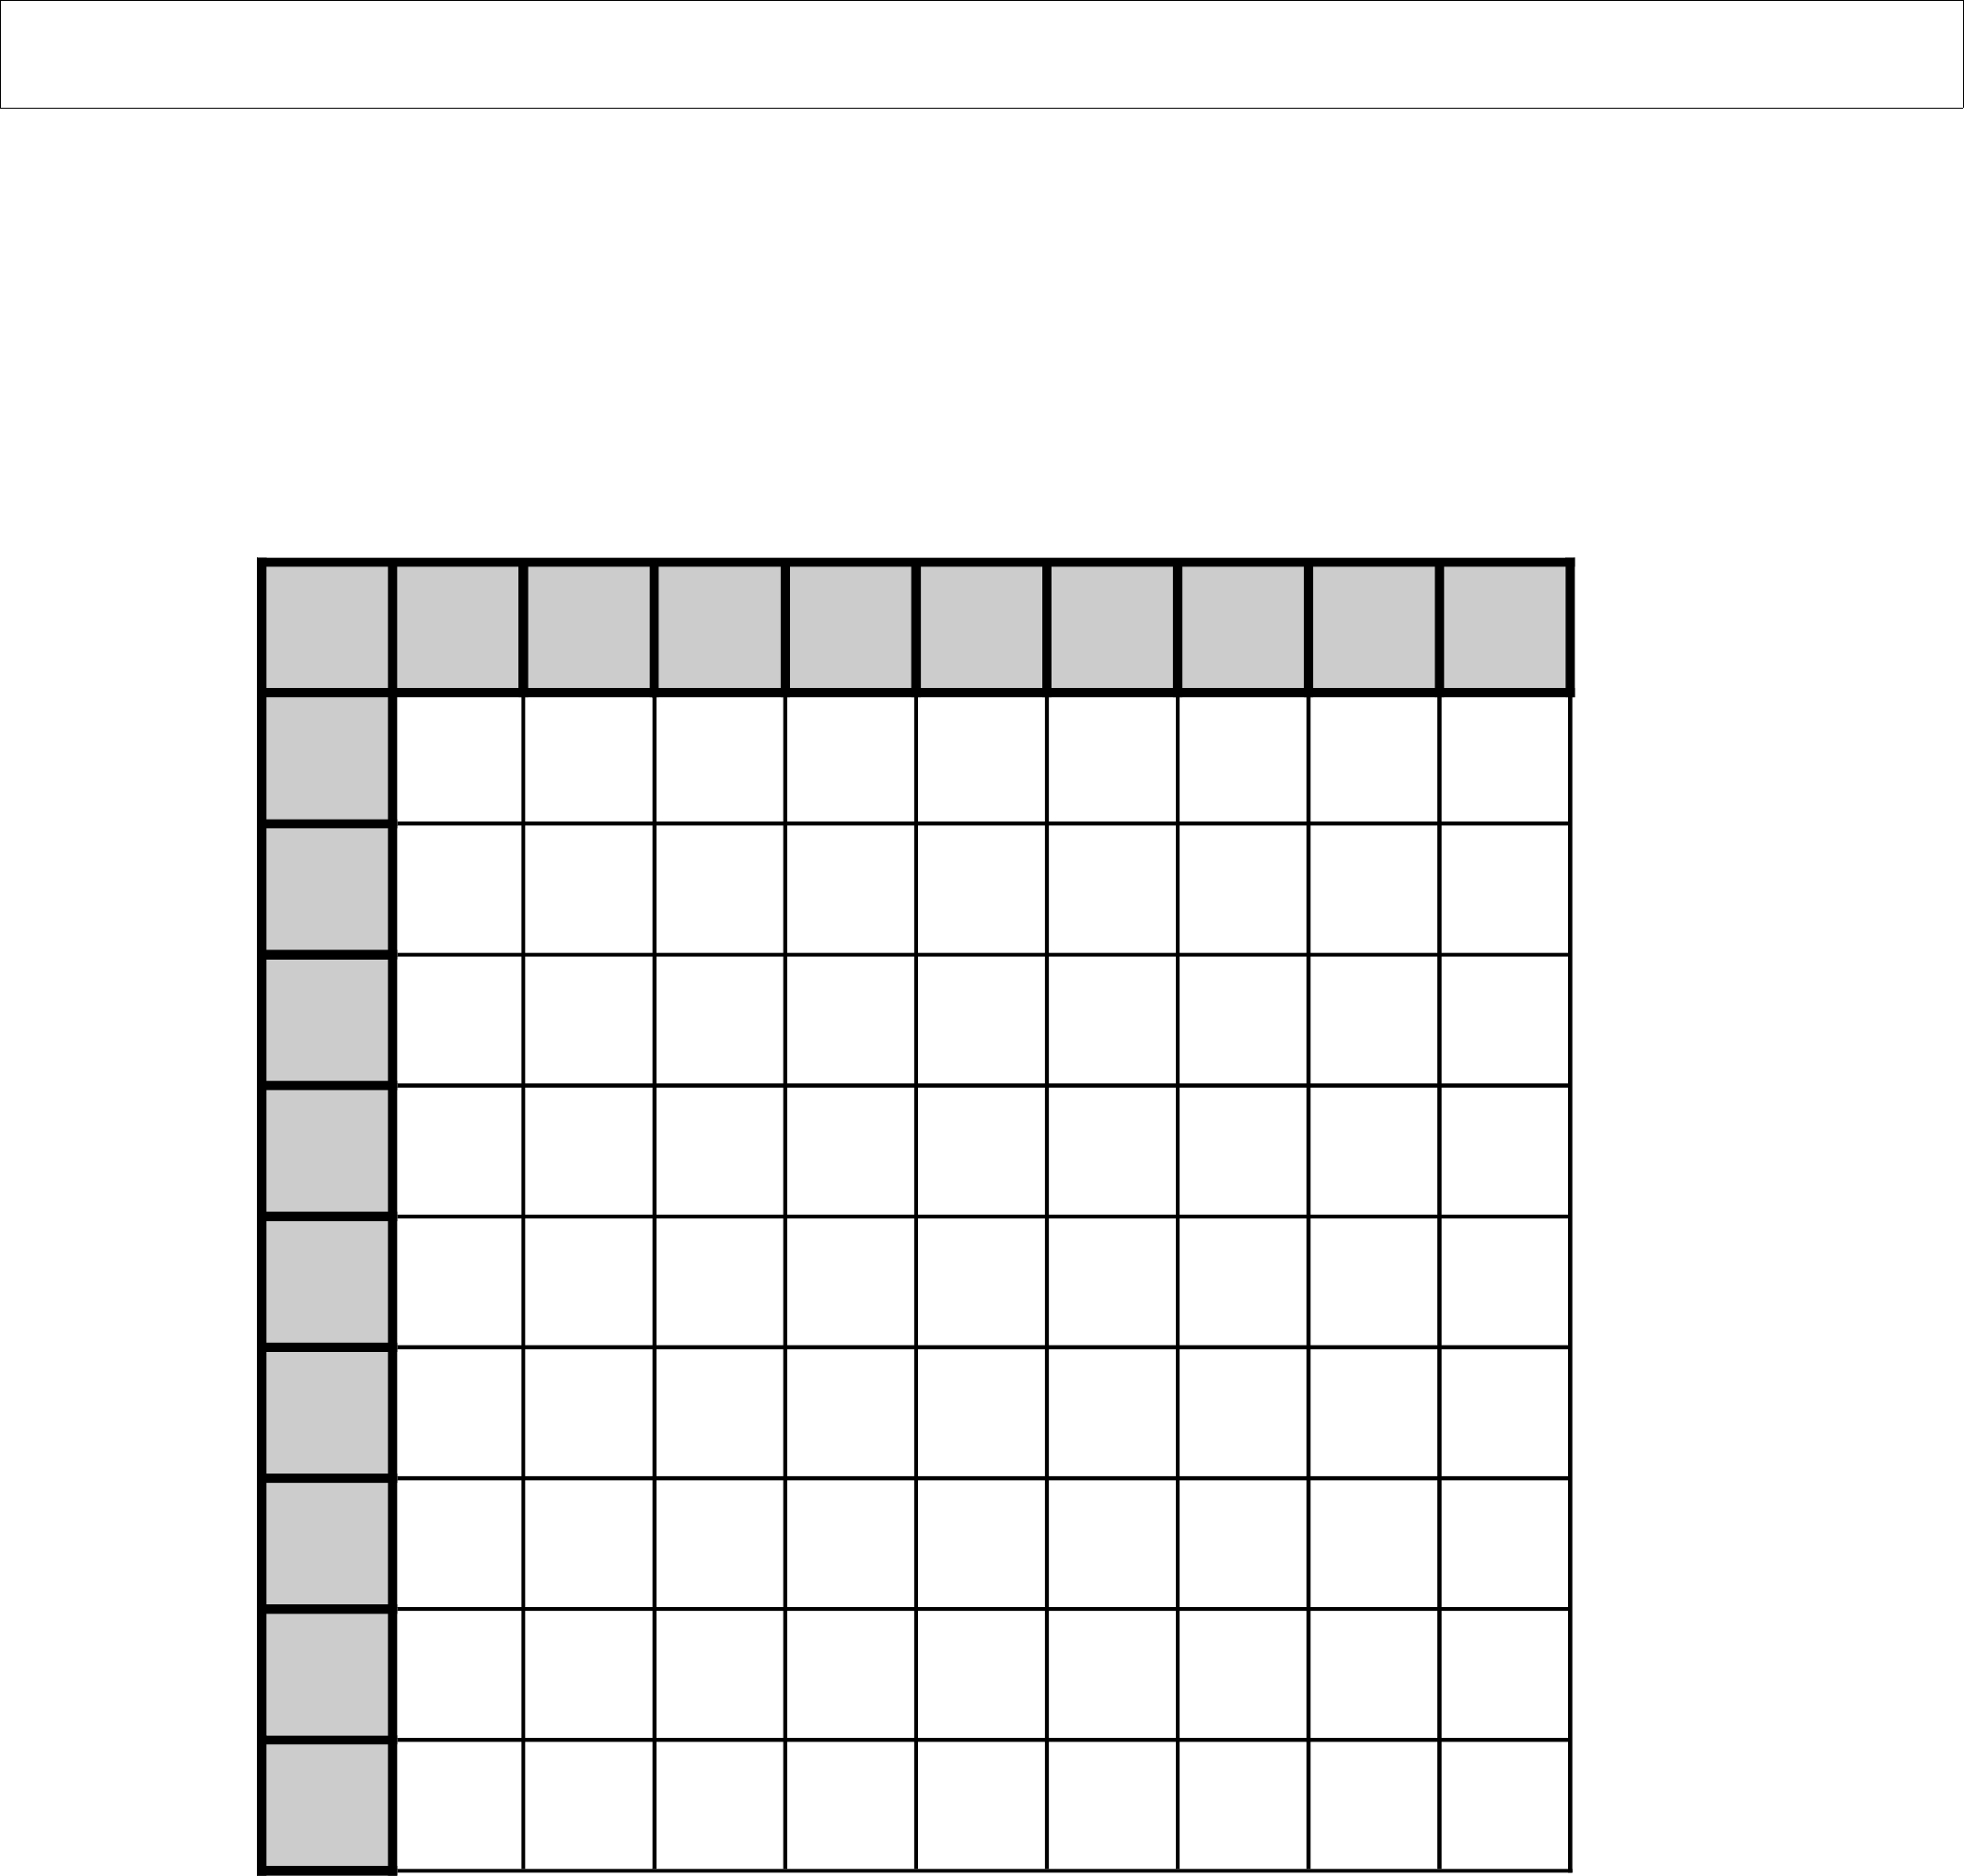 Print Out The Grade School Multiplication Table Up To 12x12